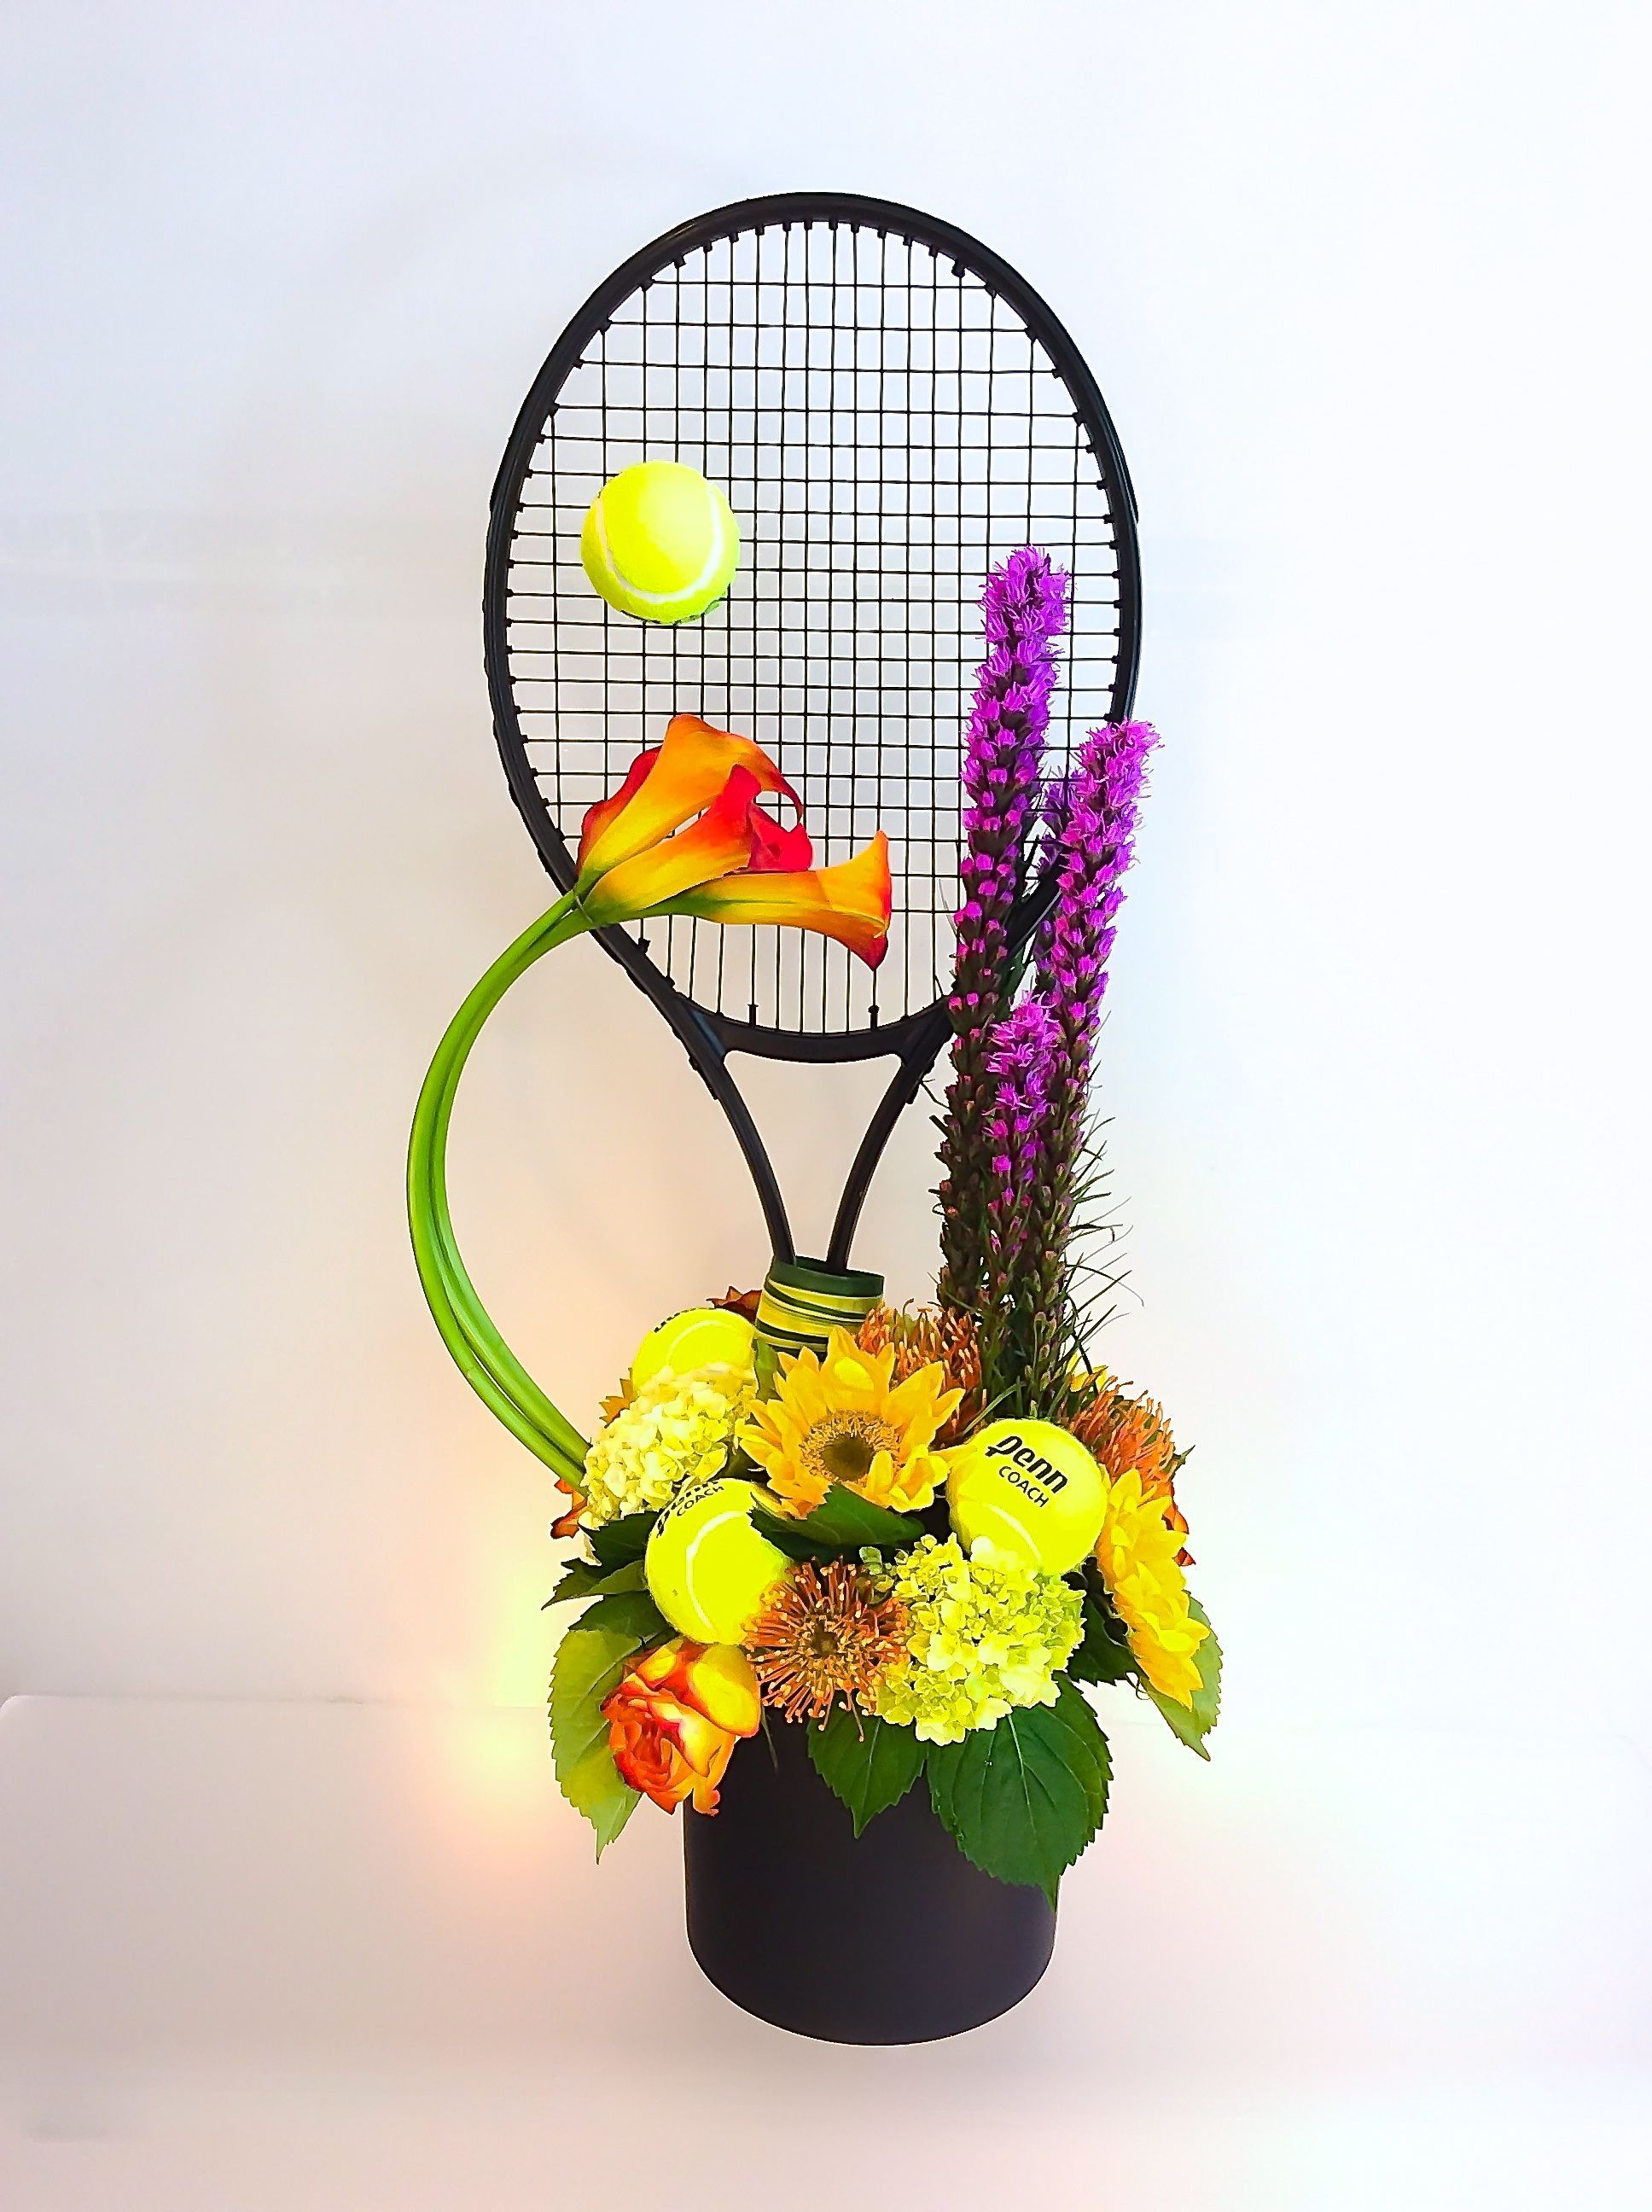 Tennis themed birthday flower arrangement designed by